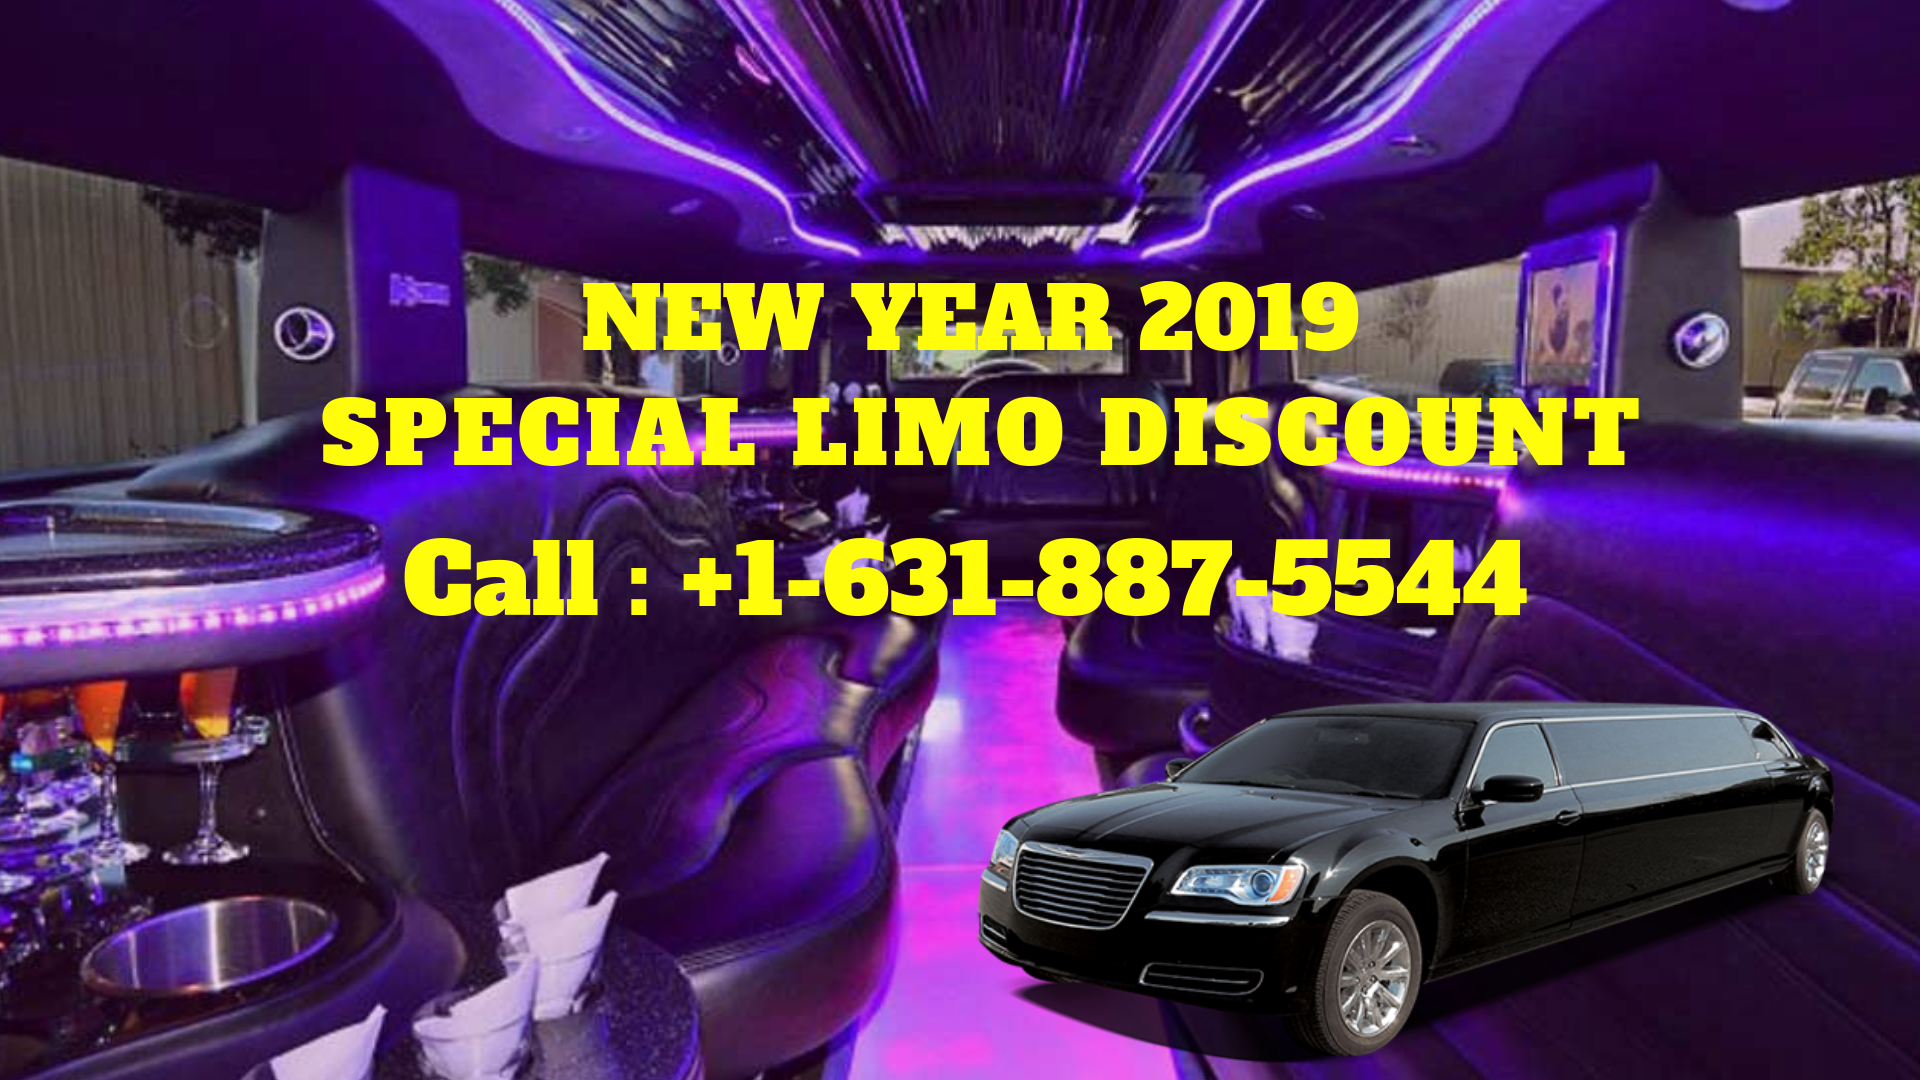 New Year 2019 Special Long Island Limo Discount